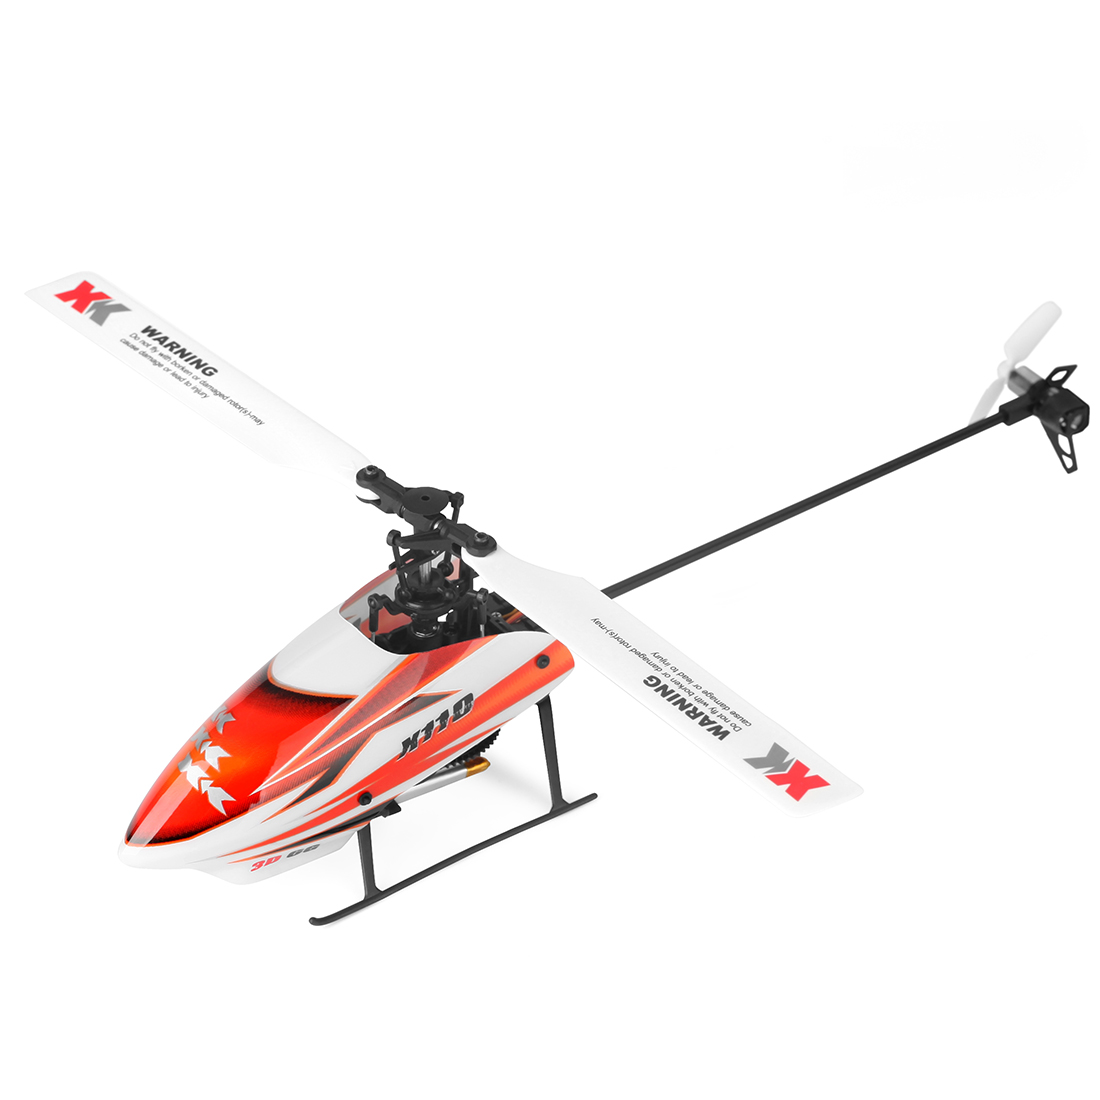 Hot Sale XK K110 2.4G 6CH Single-blade Brushless Children RC Helicopter Drone with 3D Upside Down Flight Stunt for Kids 2018 metal silver tail motor group for wltoys xk k110 rc drone helicopter parts